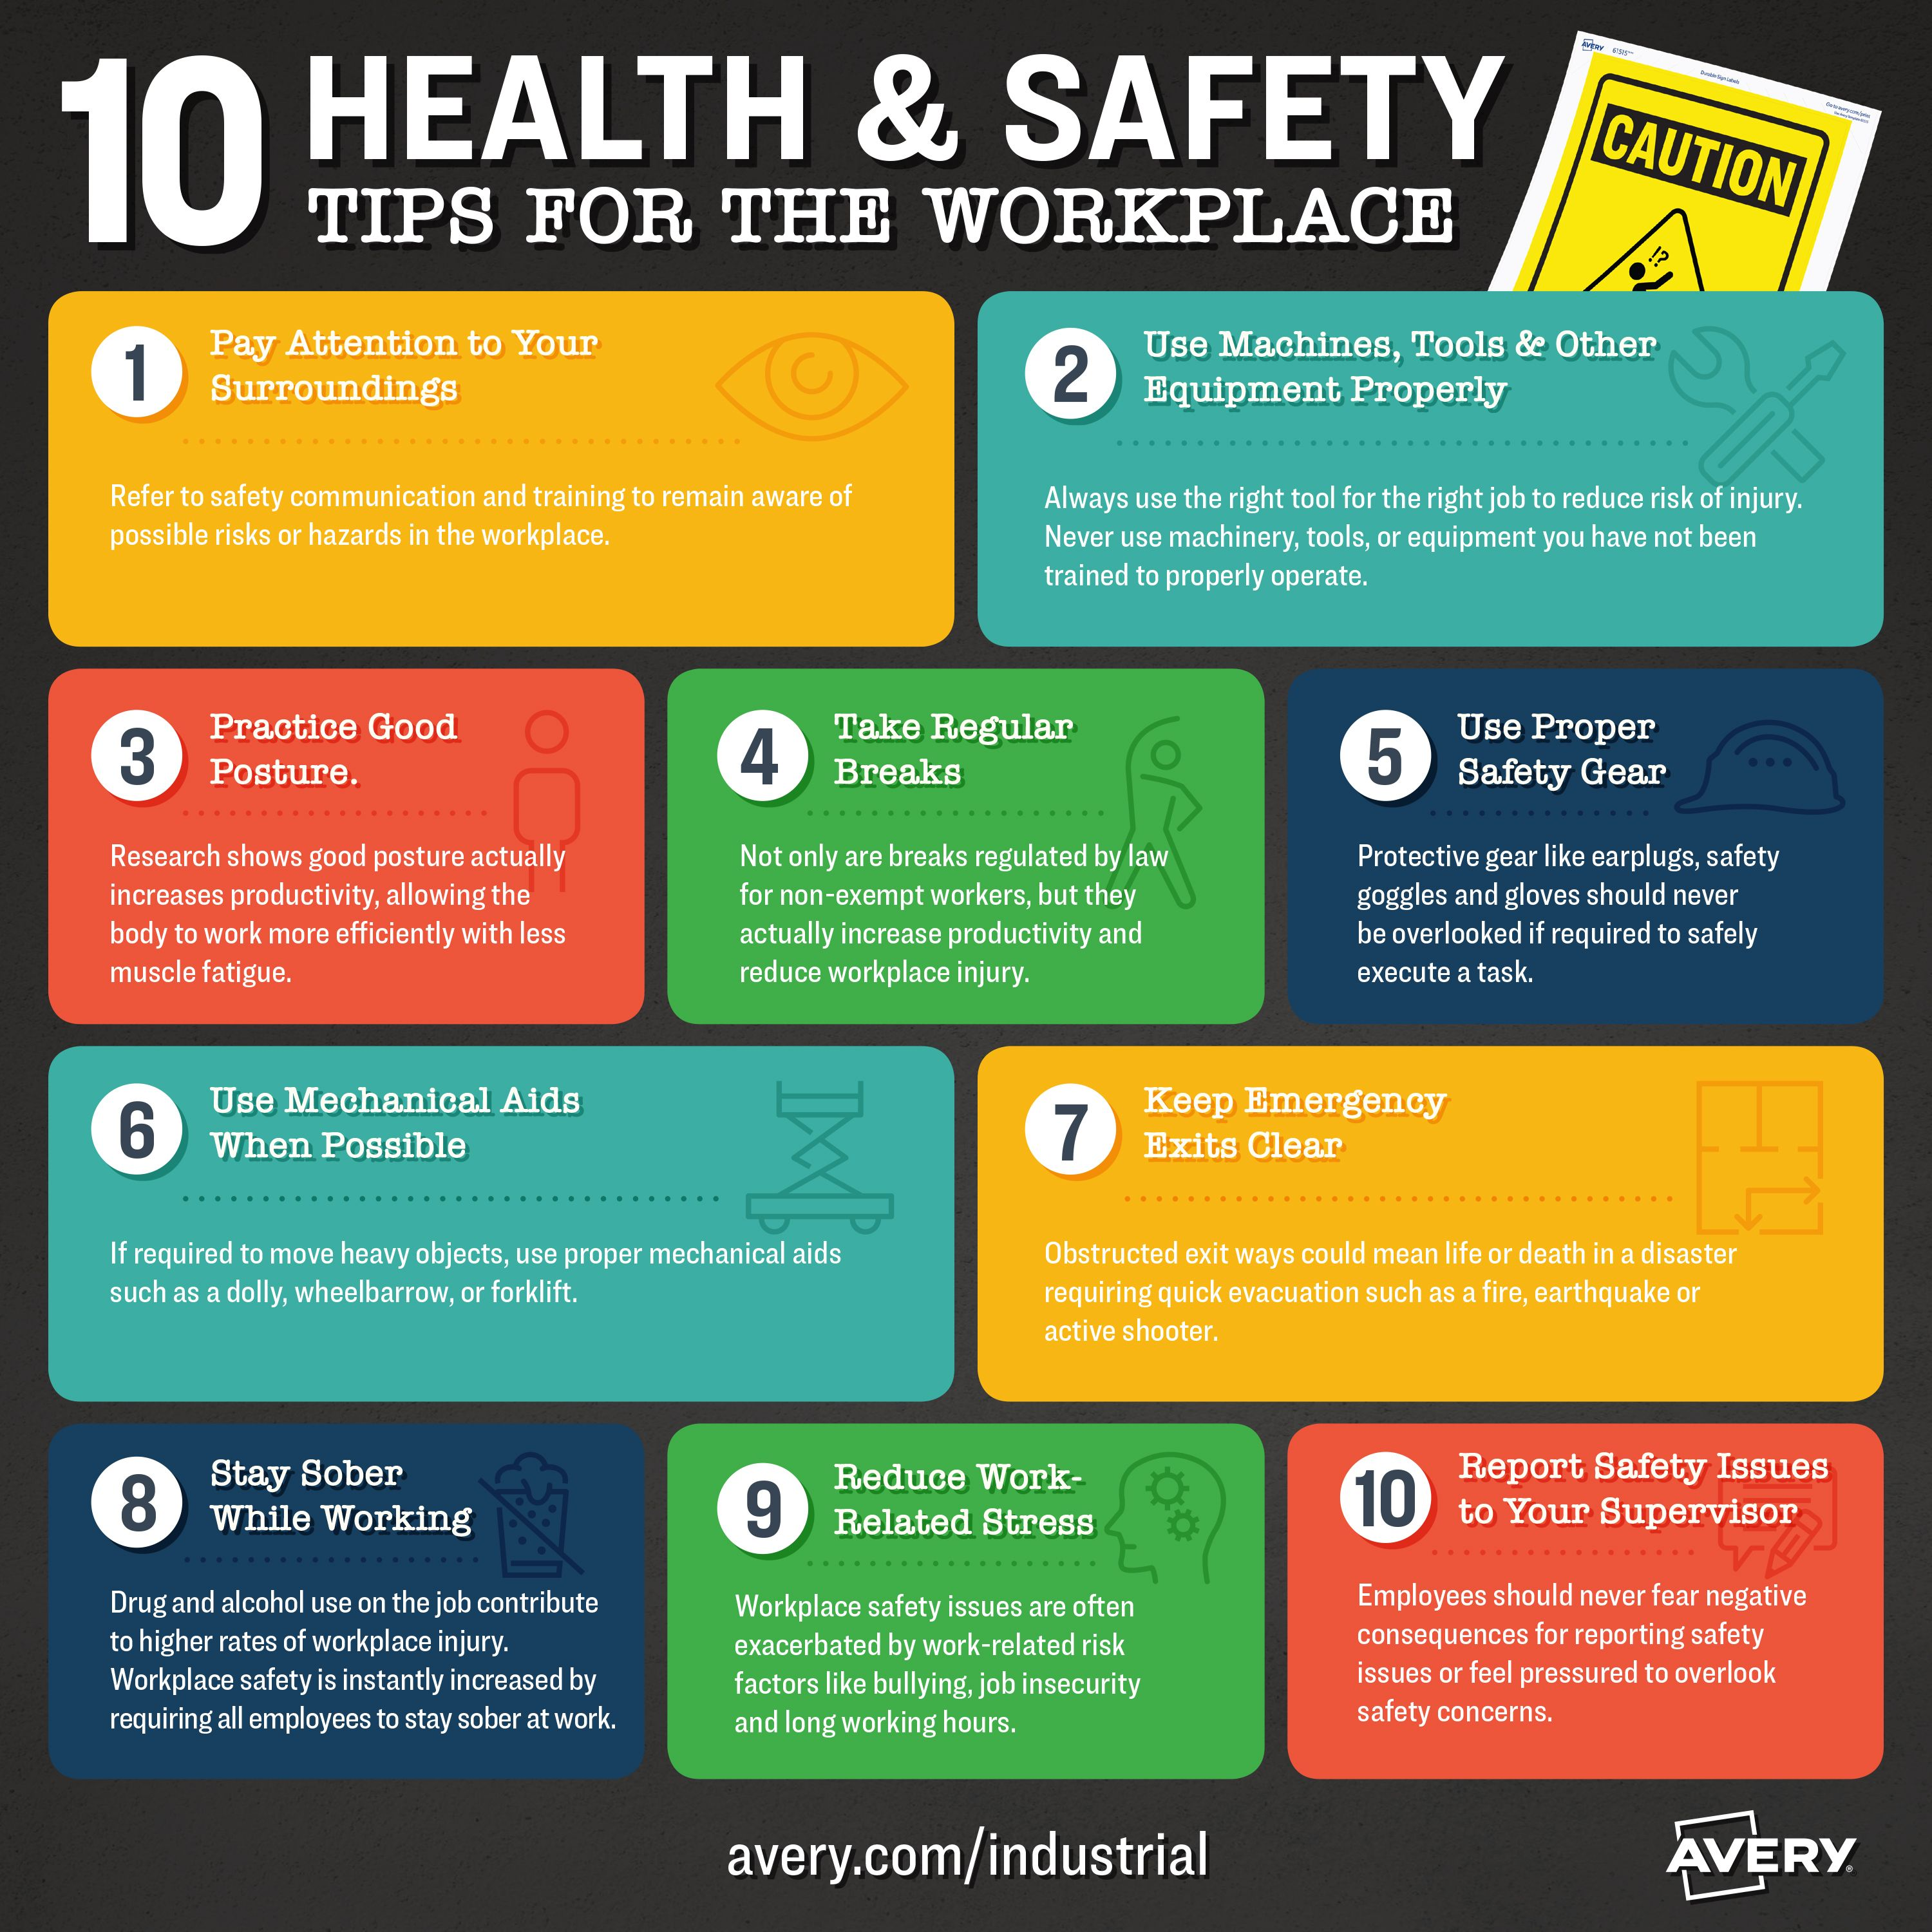 161 5 Billion Dollars 104 000 000 Days Lost To Workplace Injuries In 201 Health And Safety Poster Workplace Safety And Health Occupational Health And Safety